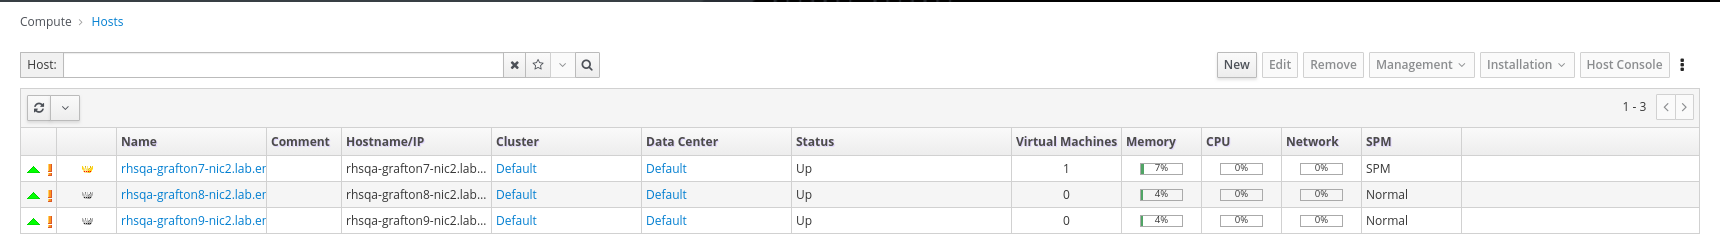 Administration Console host dashboard